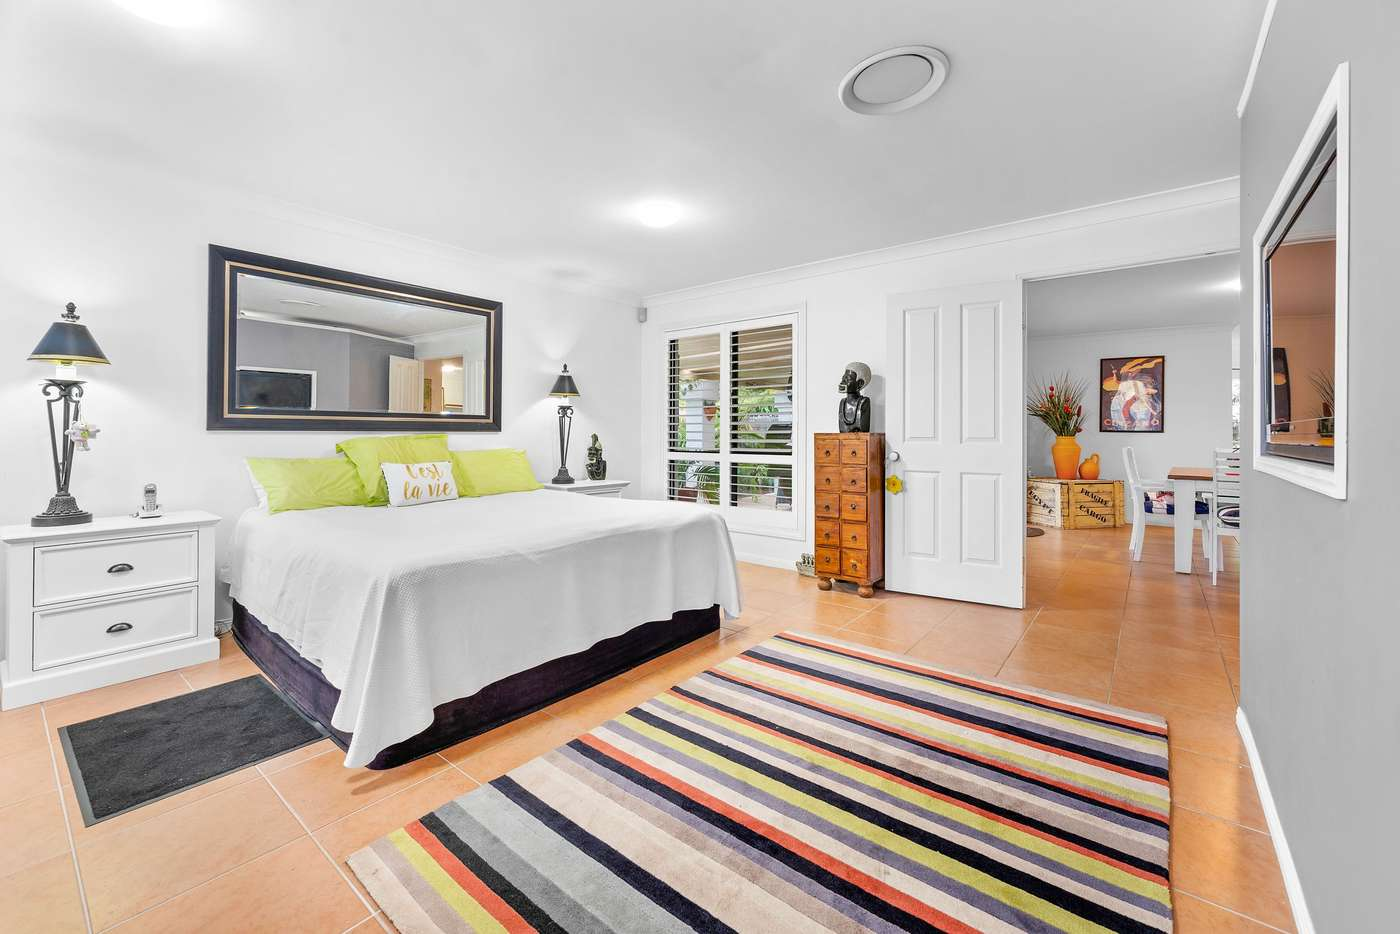 Sixth view of Homely house listing, 11 Diamantina Court, Murrumba Downs QLD 4503